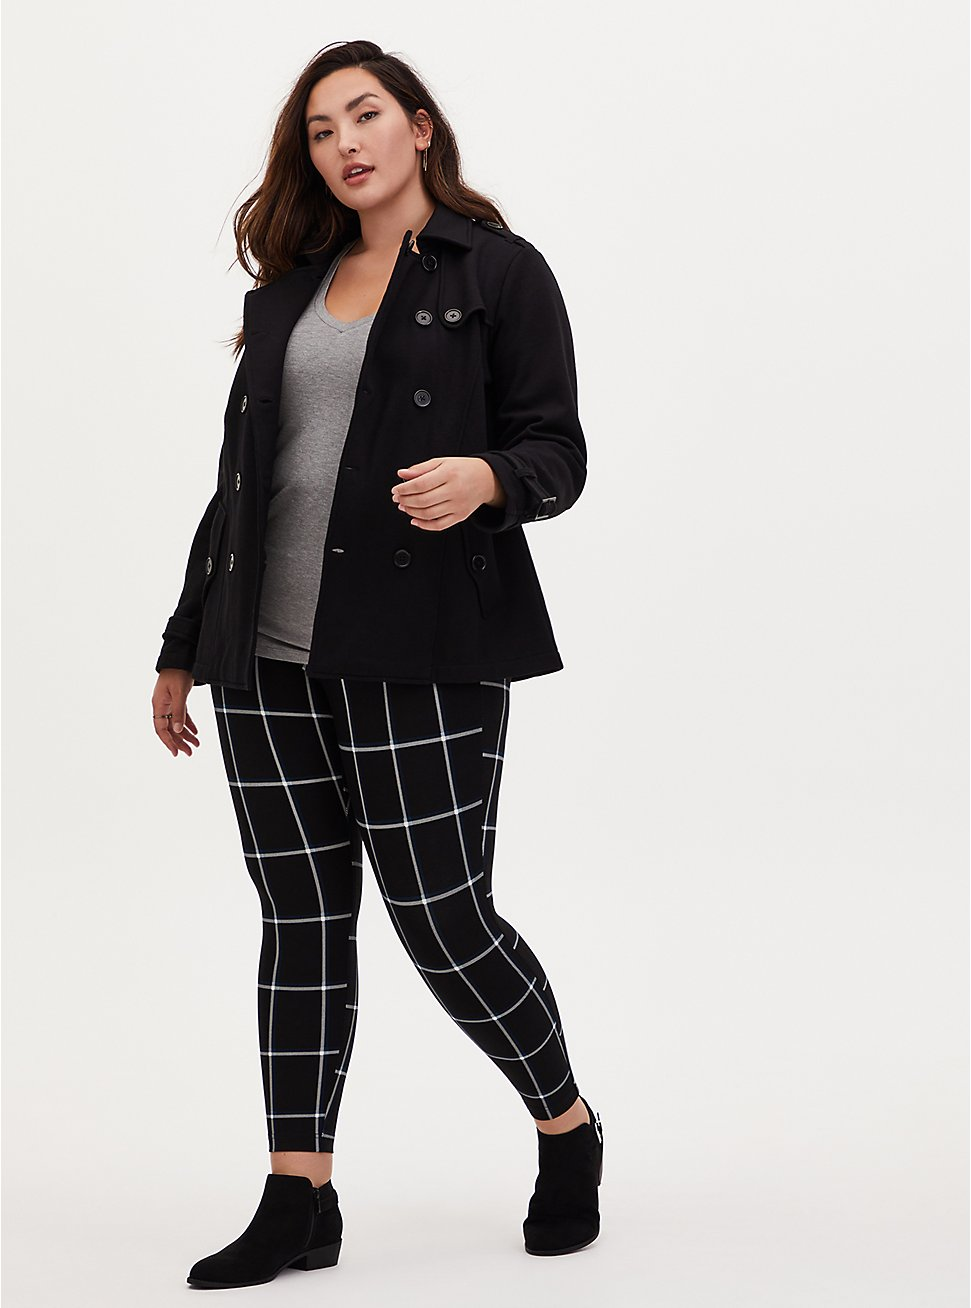 Studio Ponte Slim Fix Black Plaid Pull-On Pixie Pant, PLAID - BLACK, hi-res